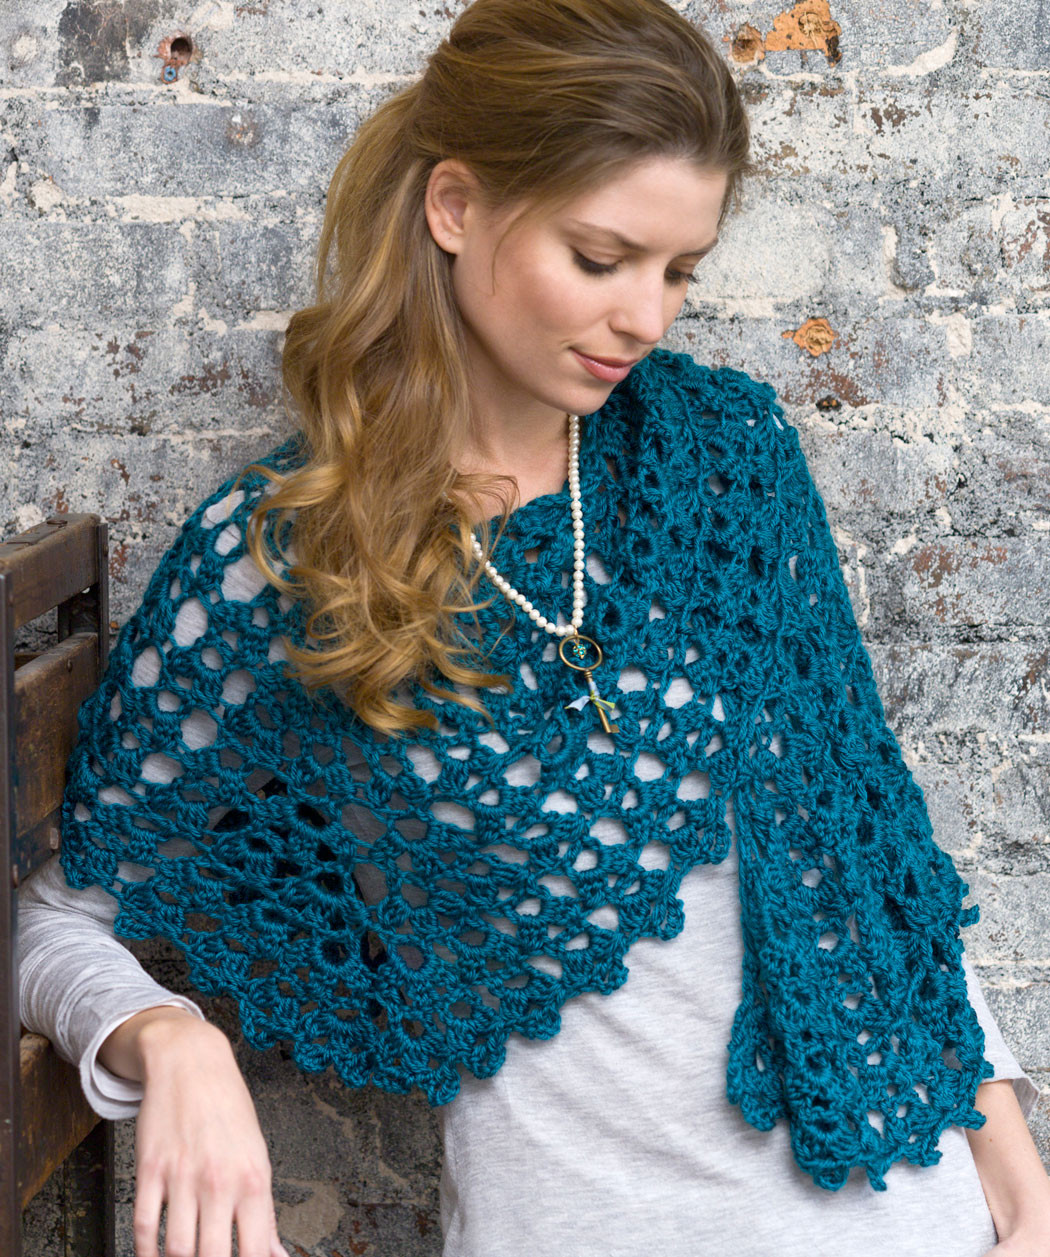 Free Easy Crochet Patterns Elegant Graceful Shell Shawl Crochet Pattern Of Superb 49 Images Free Easy Crochet Patterns